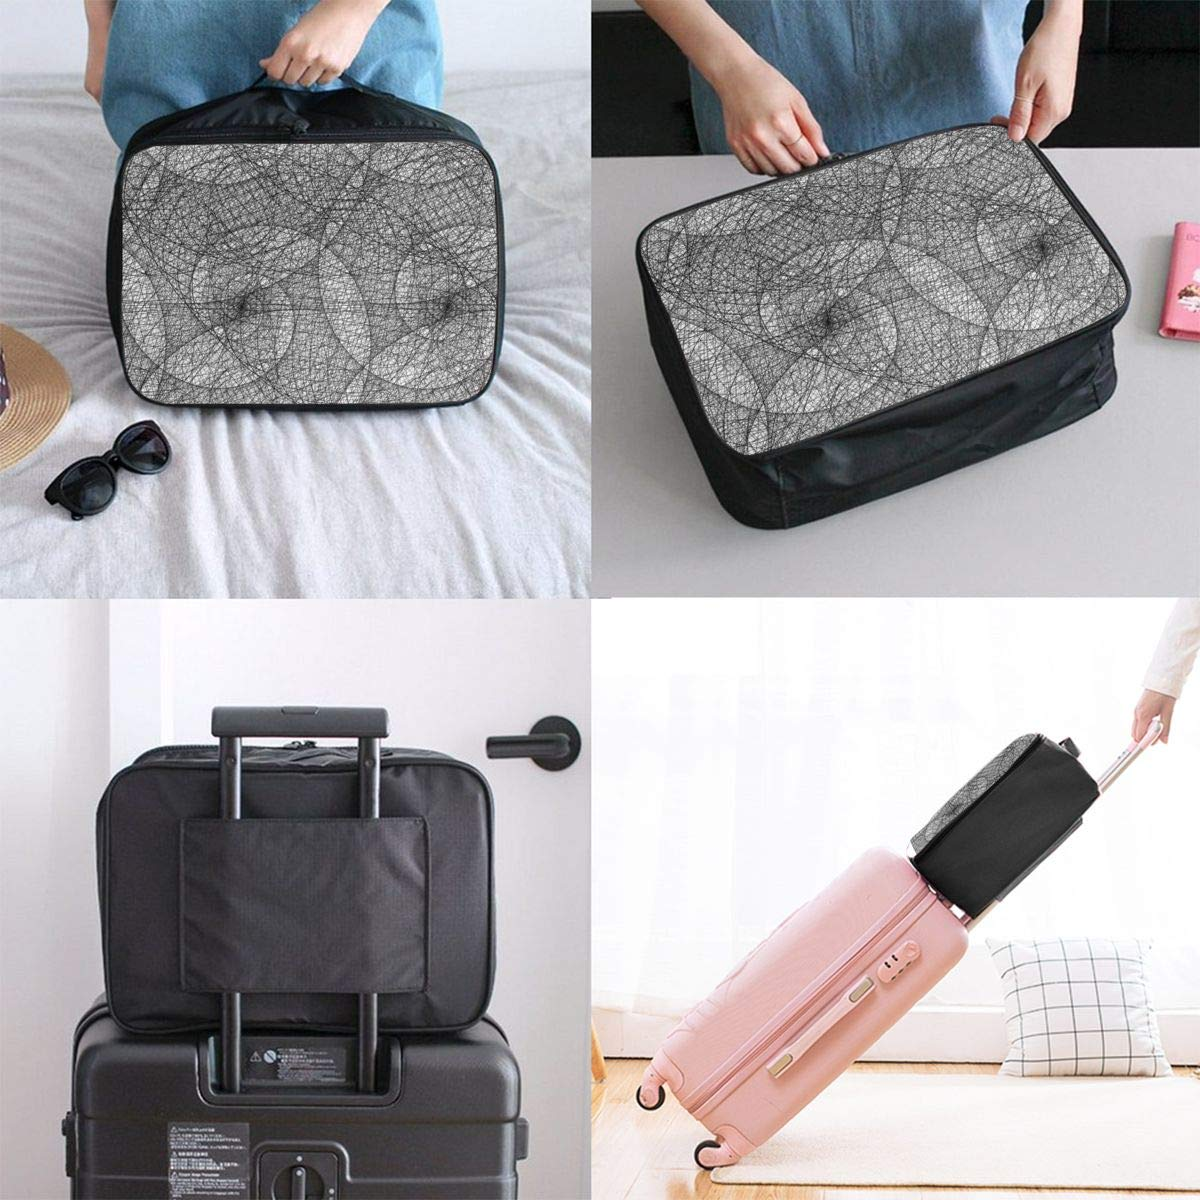 Art Black And White Shape Stripes Travel Lightweight Waterproof Foldable Storage Carry Luggage Large Capacity Portable Luggage Bag Duffel Bag